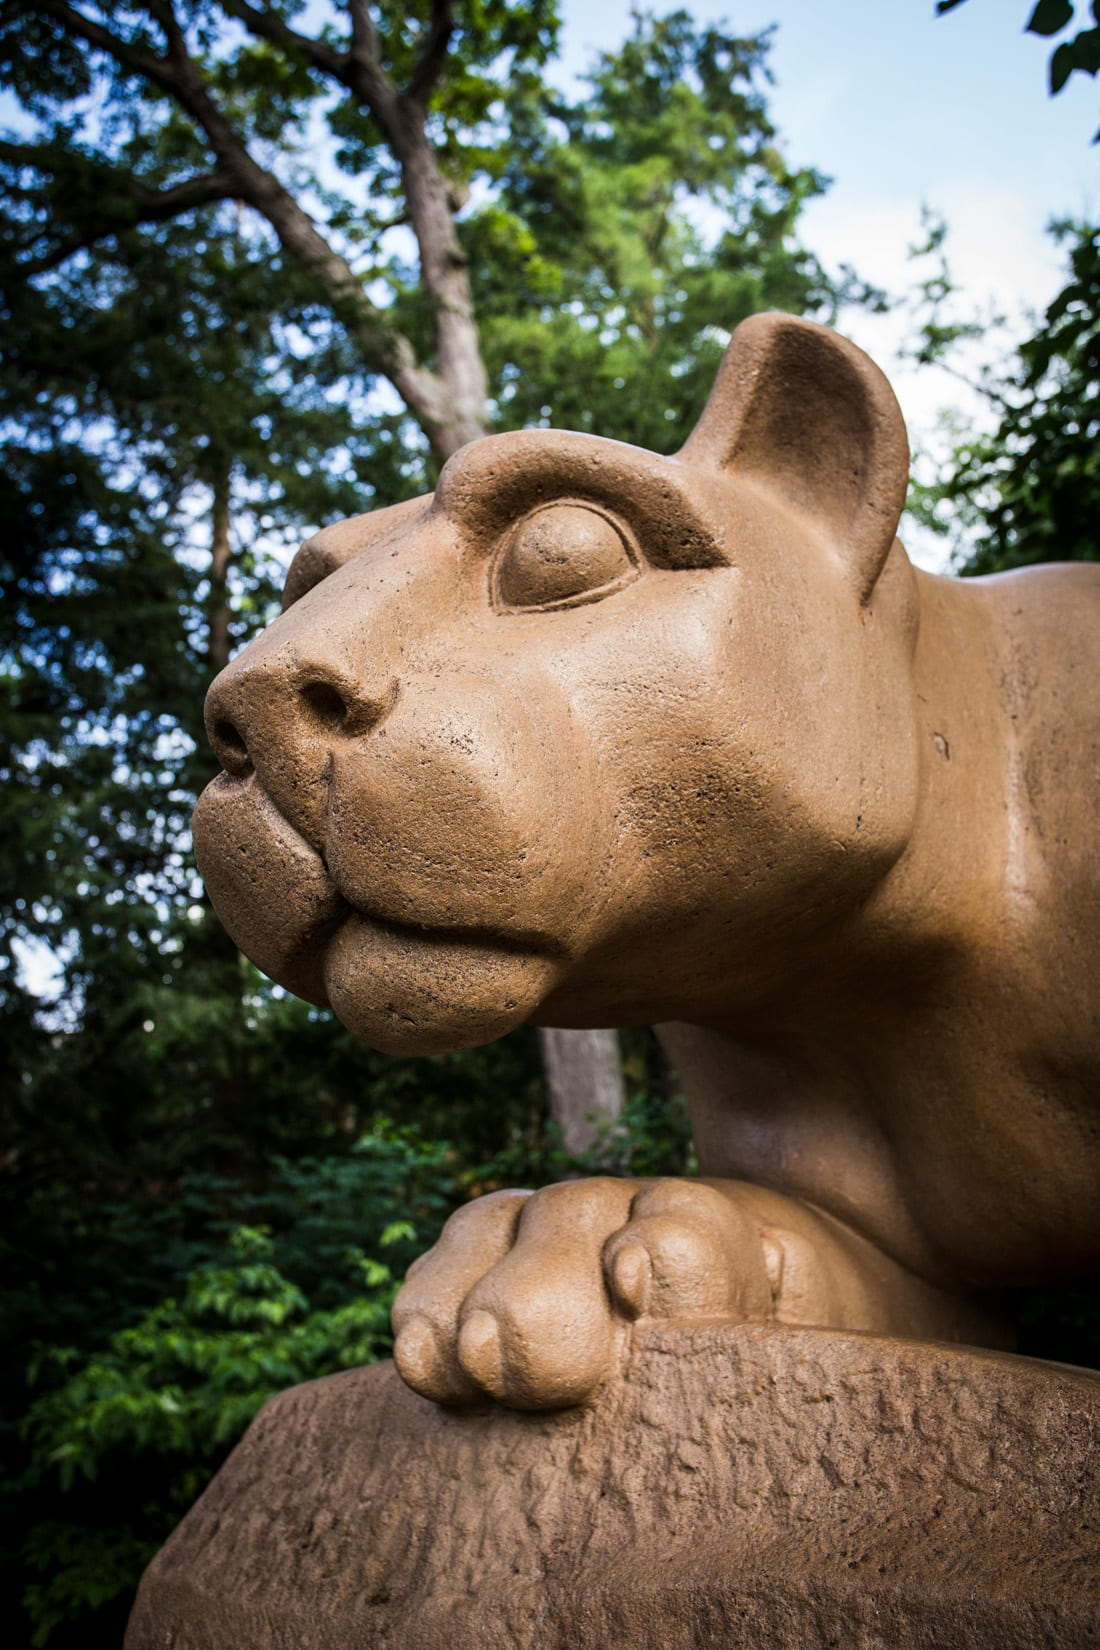 Hail to the Lion, by Bob Lambert Photography (Nittany Lion, State College, PA)